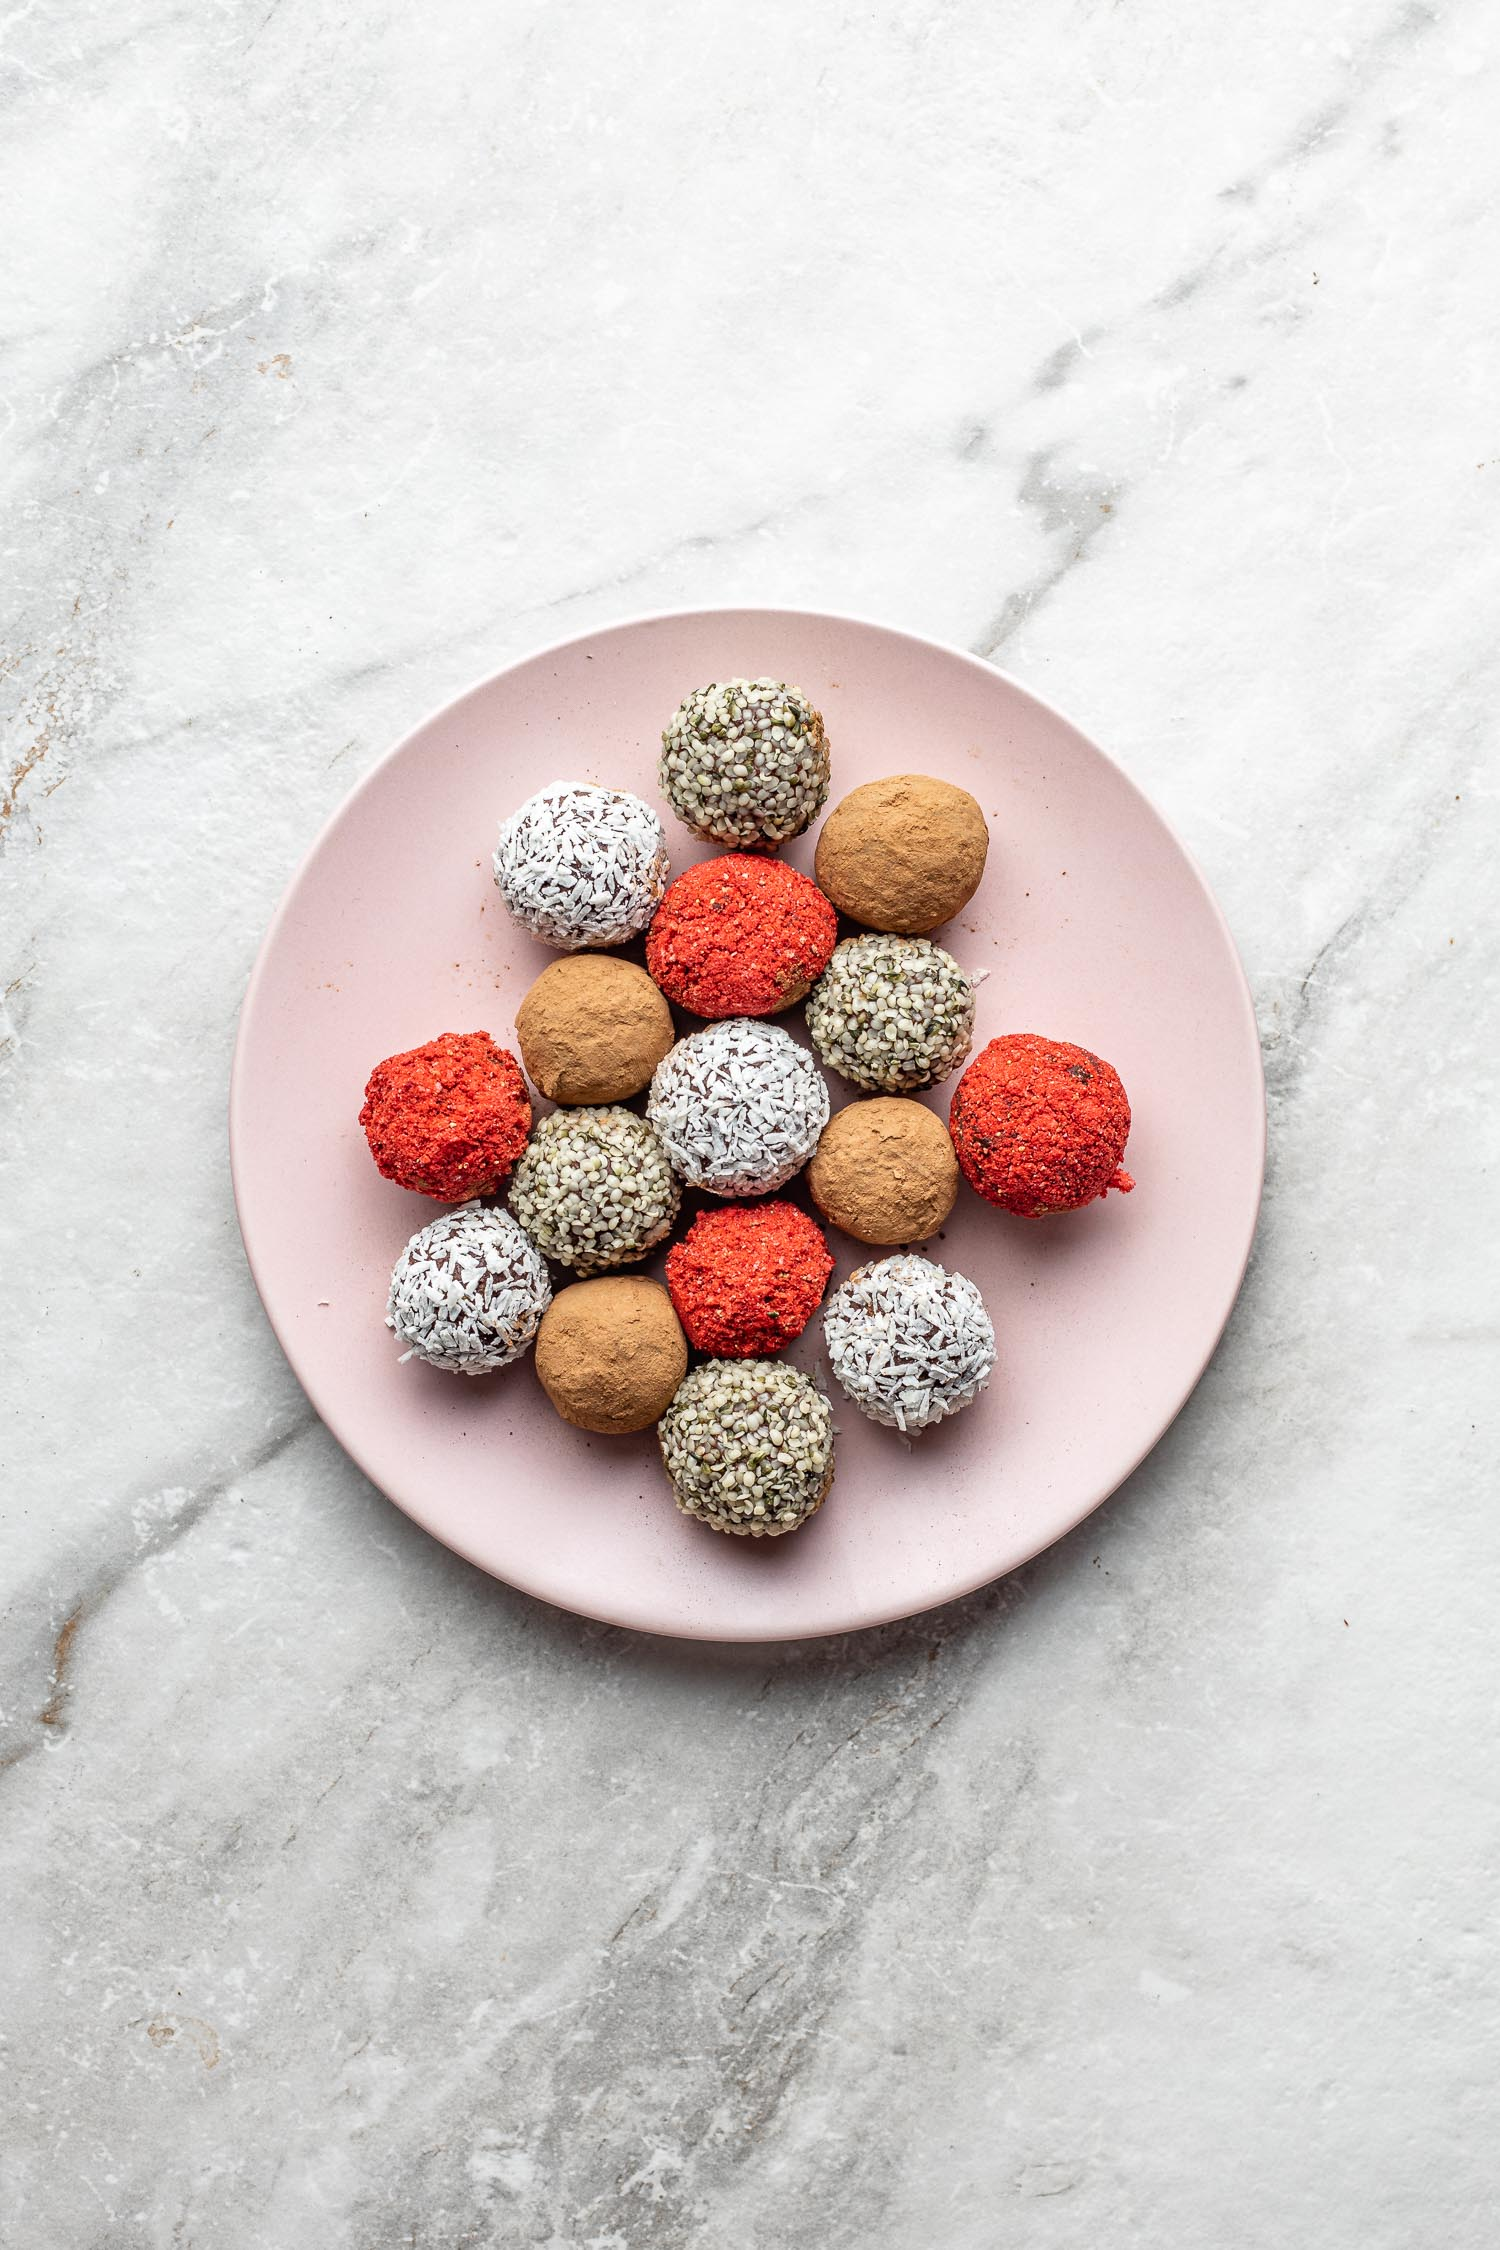 on a marble background sits a pink plate filled with red, white, brown and seeded vegan chocolate and avocado truffles